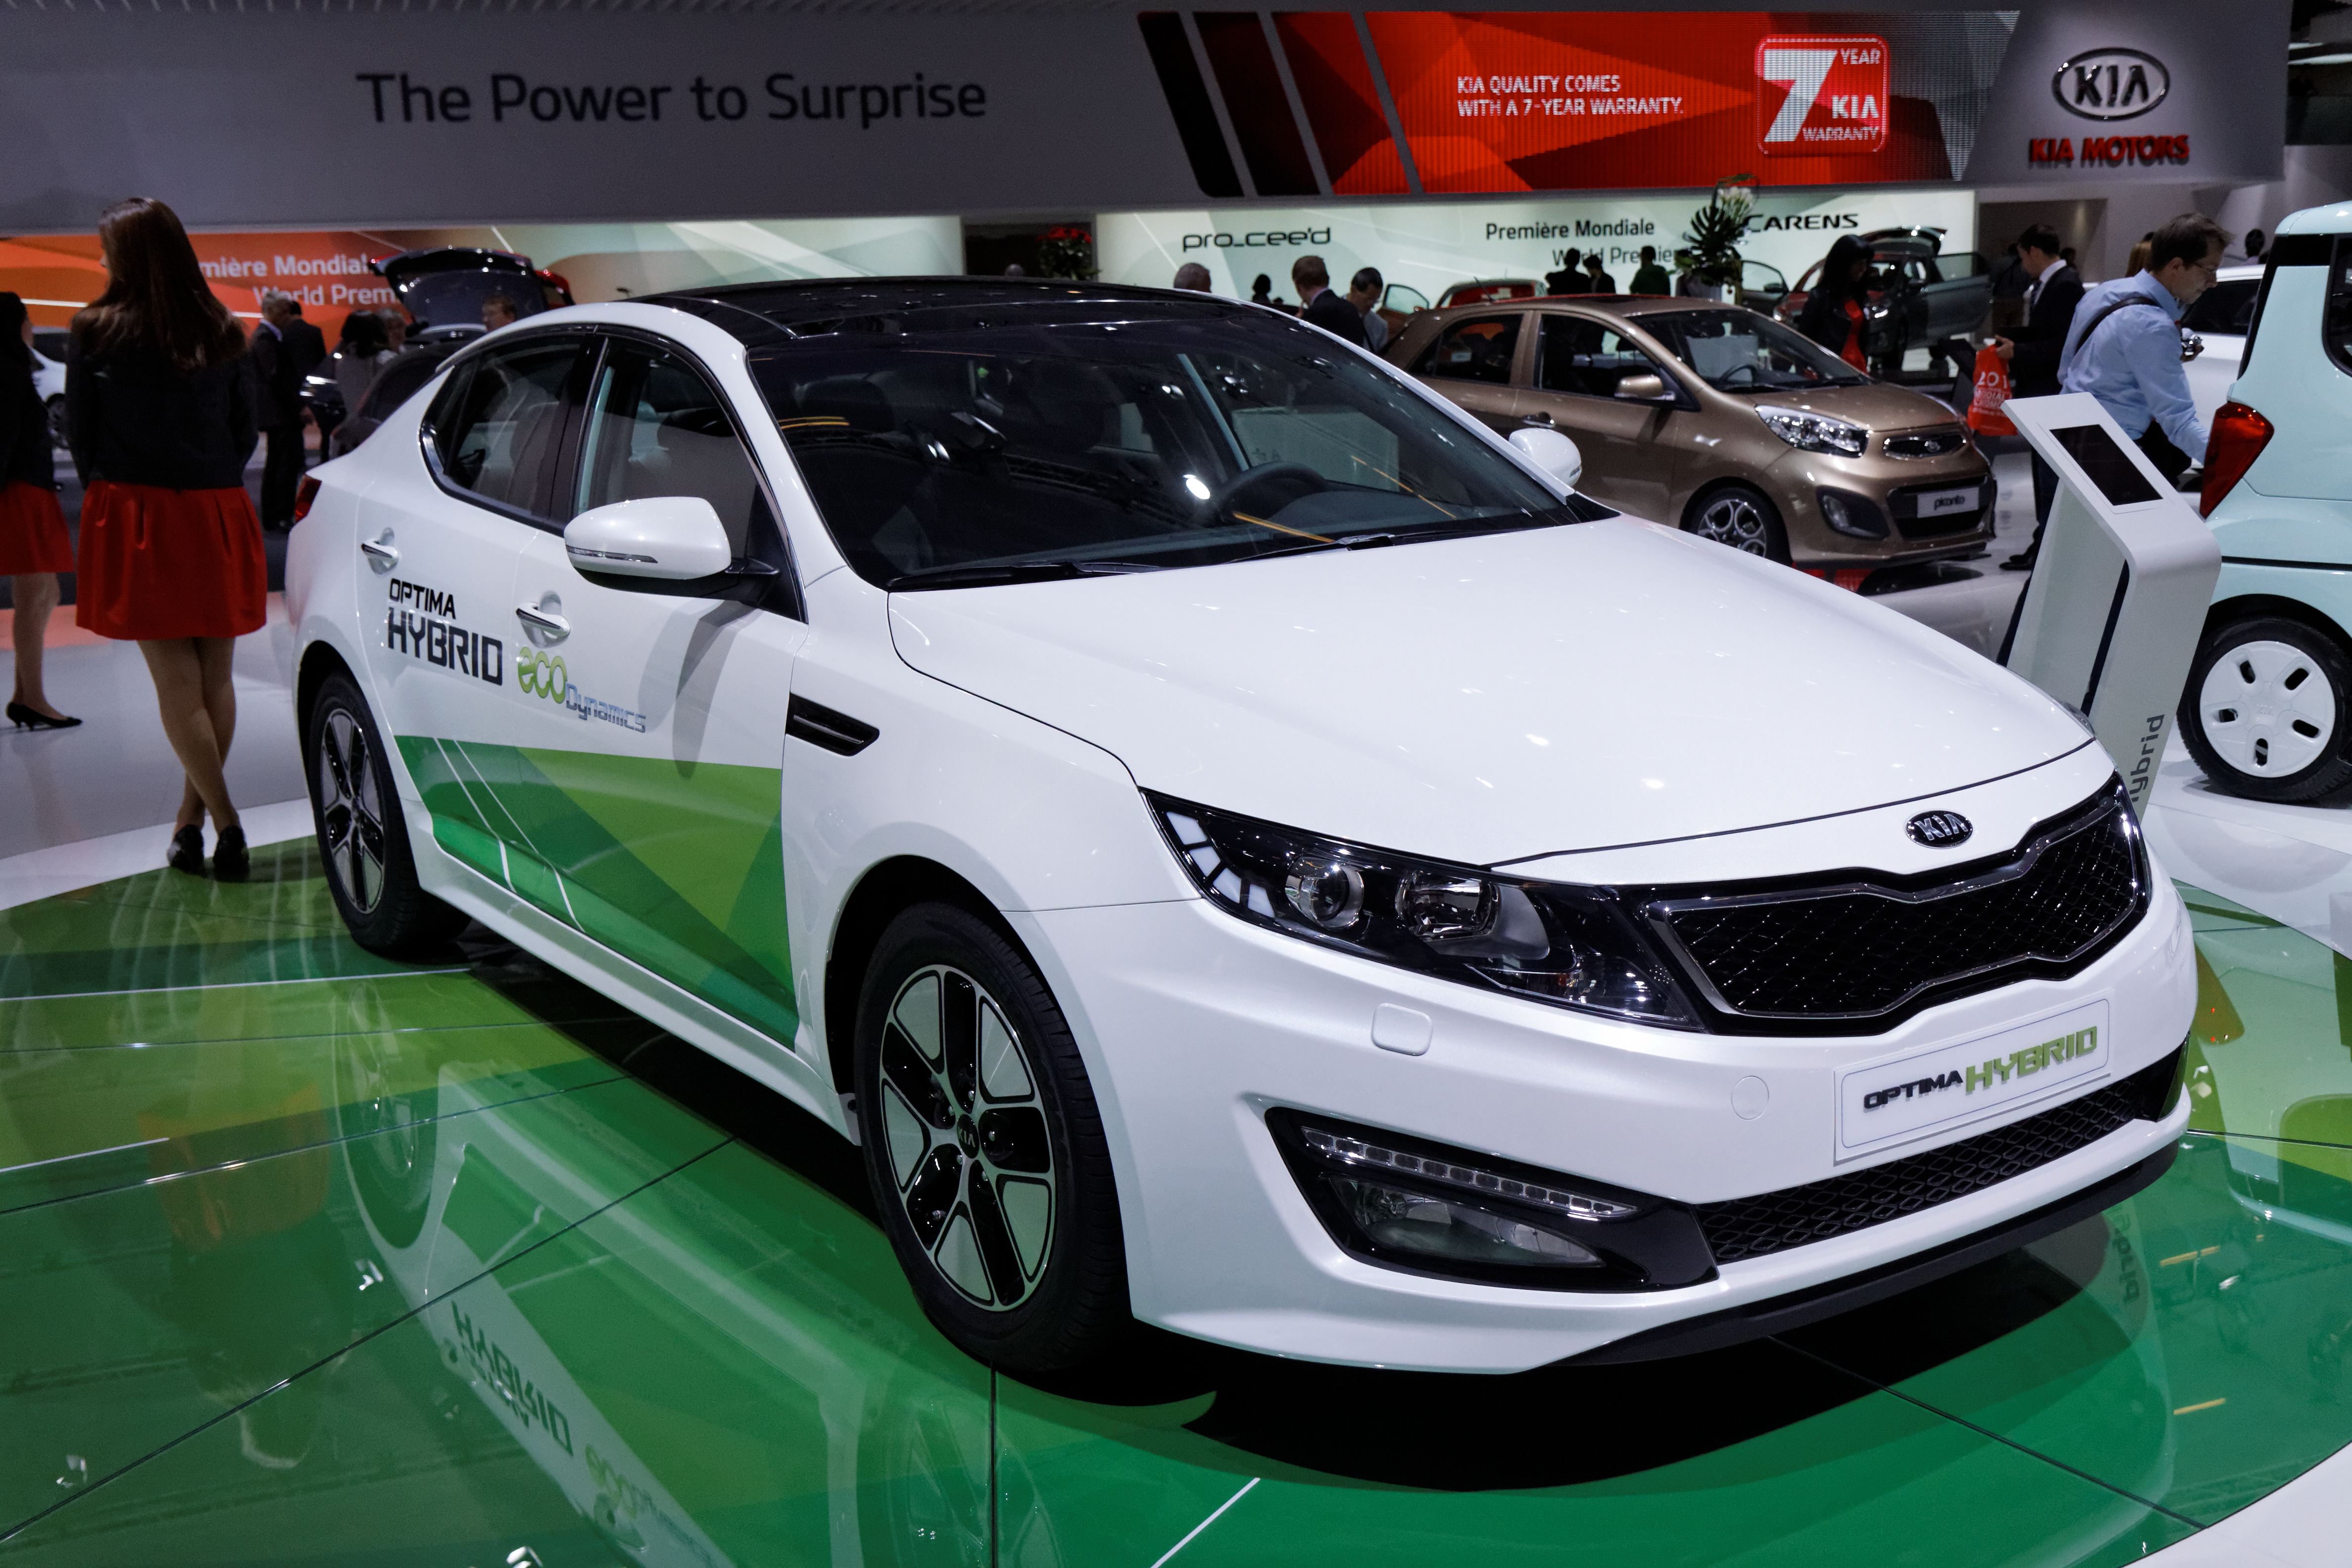 2012 Kia Optima Hybrid (US)